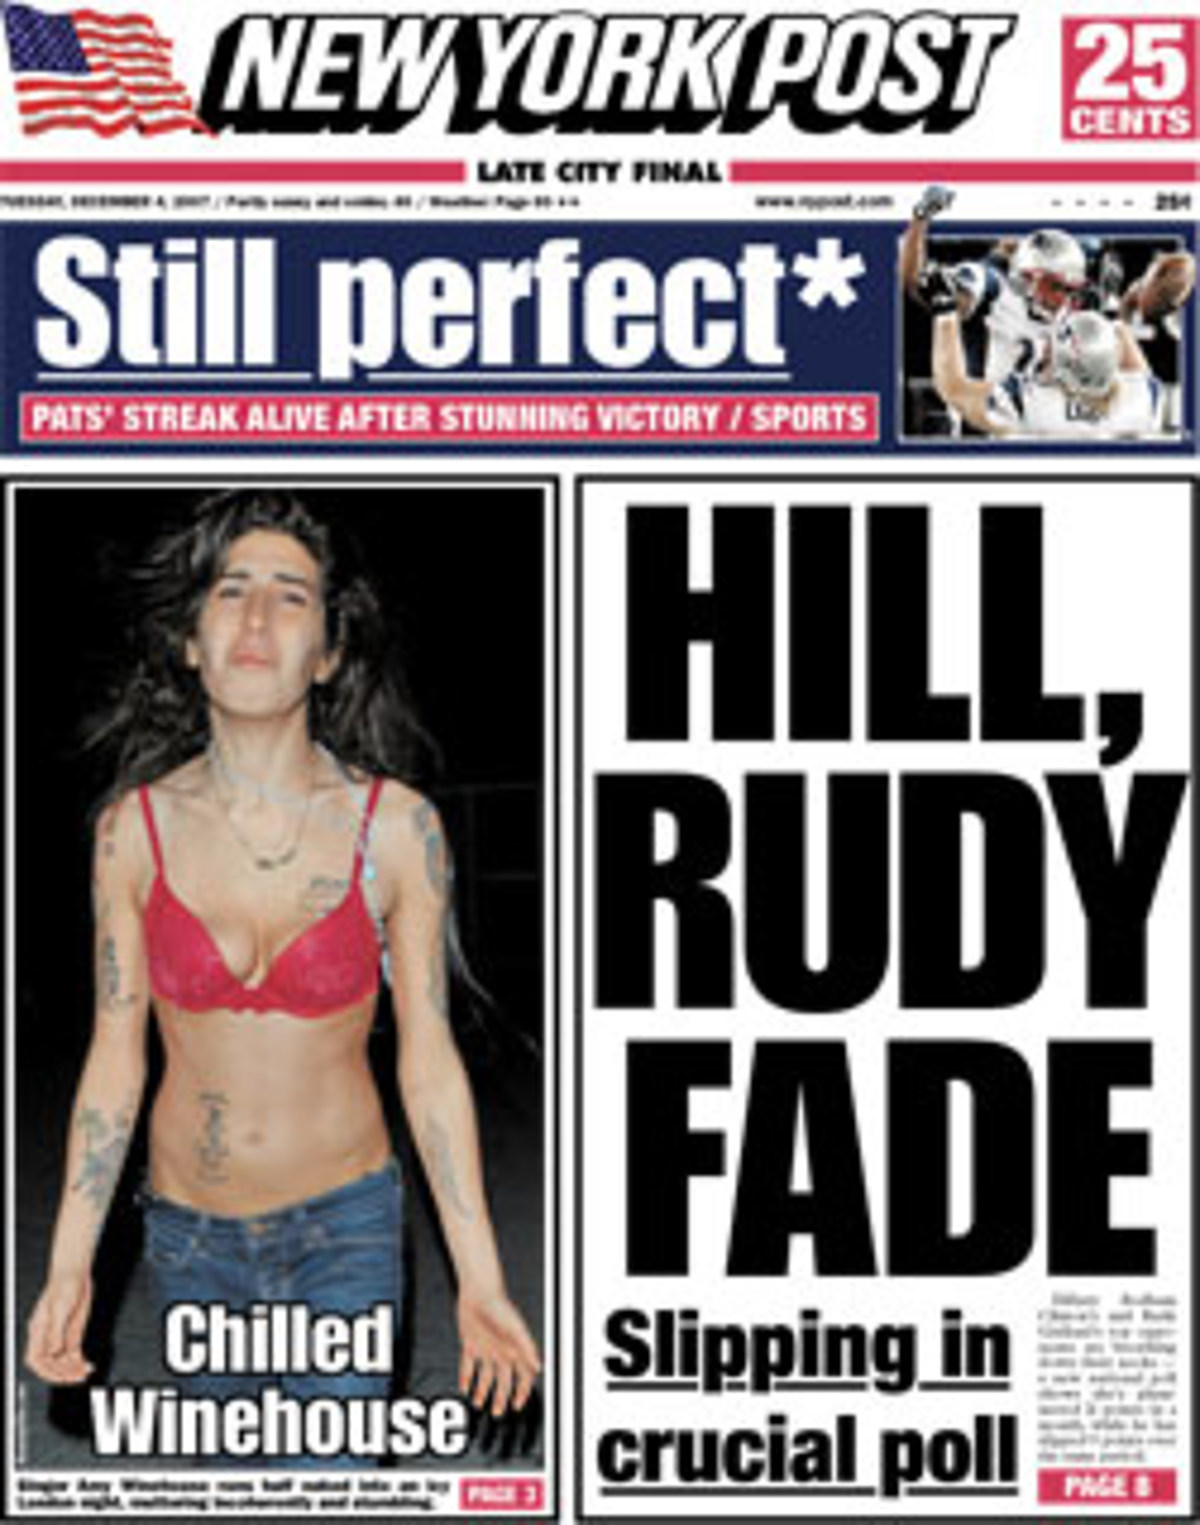 Amy Winehouse on the cover of the NY Post